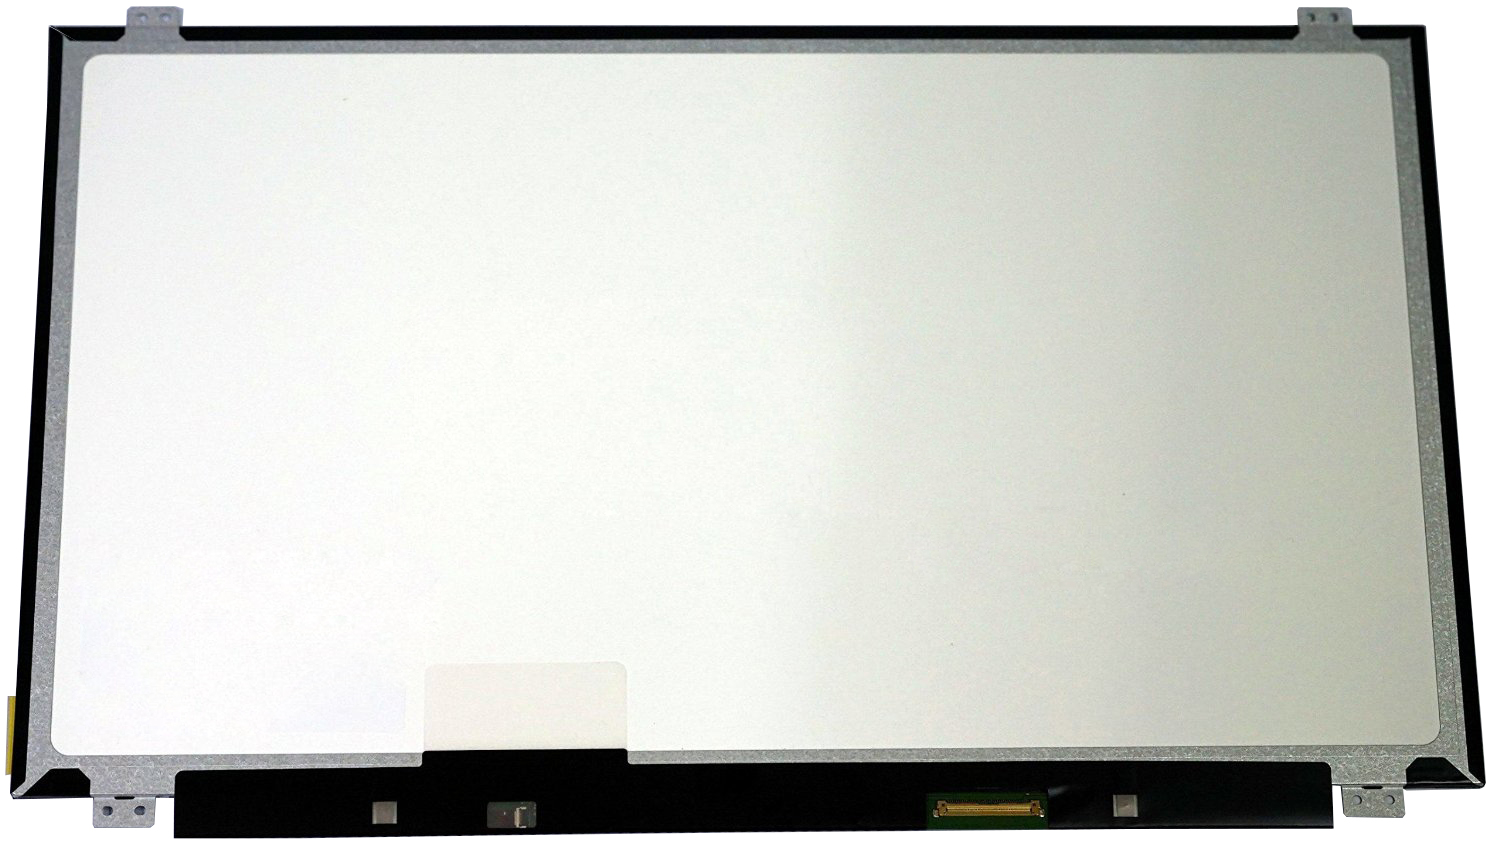 QuYing Laptop LCD Screen for acer ASPIRE 5810 5810T 5810TG 5810TZ 5745 5745G 5745Z TIMELINEX Series (15.6 inch 1366x768 40Pin N) quying laptop lcd screen for acer aspire ethos 5951g timeline 5745 7531 series 15 6 inch 1366x768 40pin n